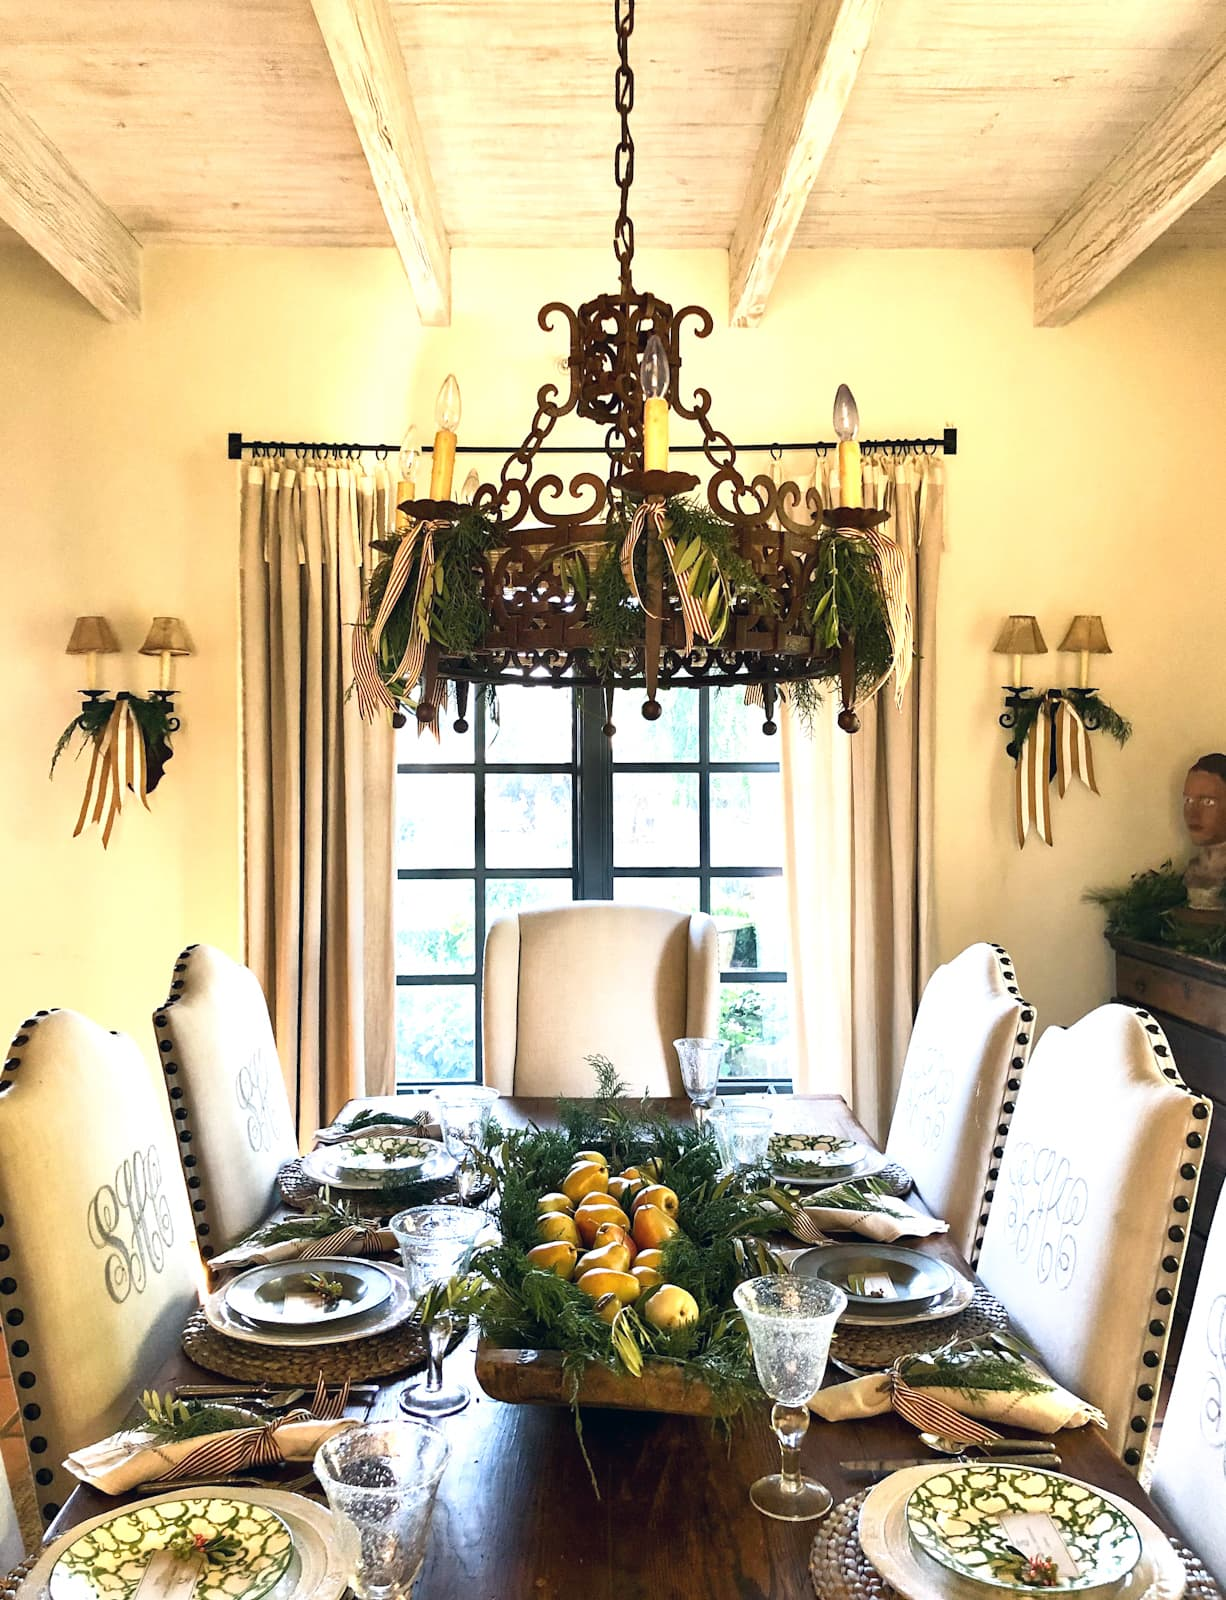 cindy hattersley's dining room christmas 2020